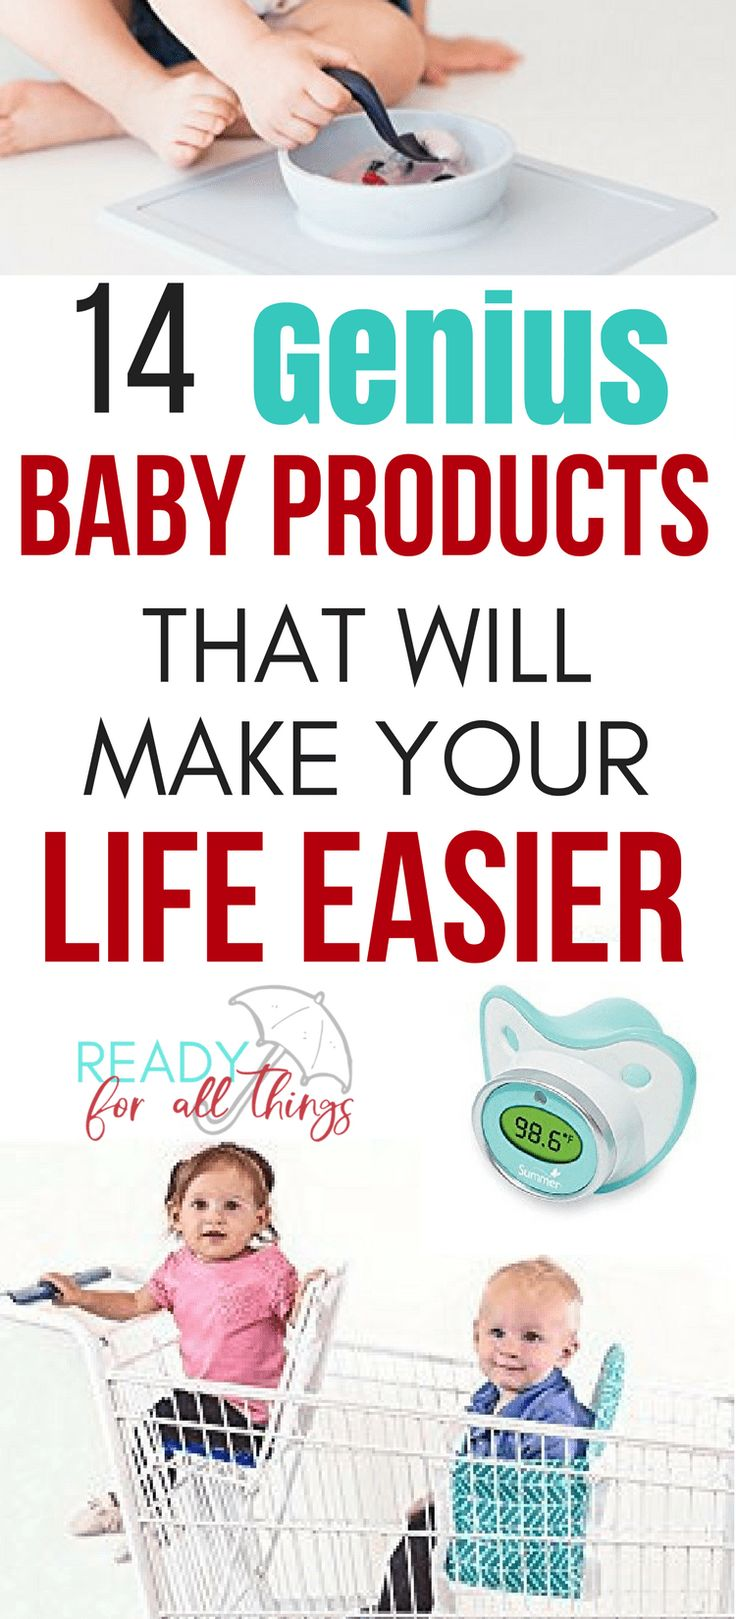 Uncategorized How You Make A Baby best 25 genius baby products ideas on pinterest sounds cool gifts and gadgets